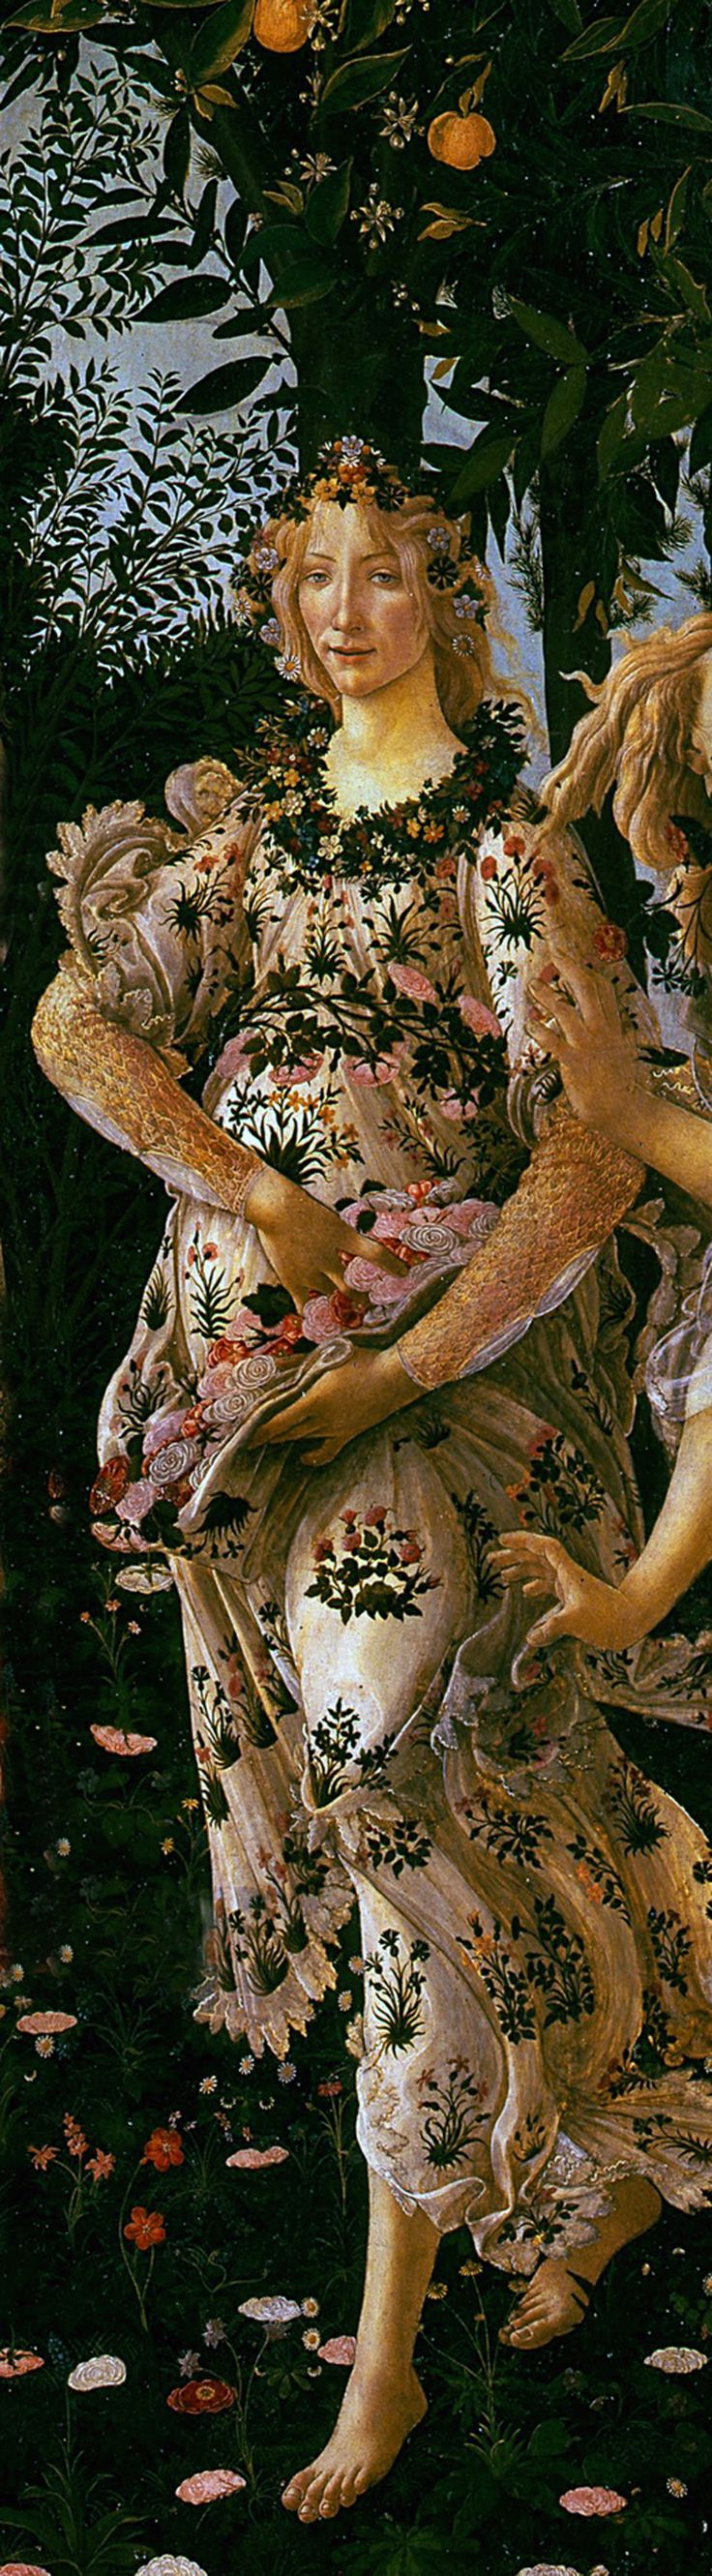 Sandro Botticelli, detail from 'La Primavera - An Allegory of Spring'' c.1482 - Painting / Art / Artwork